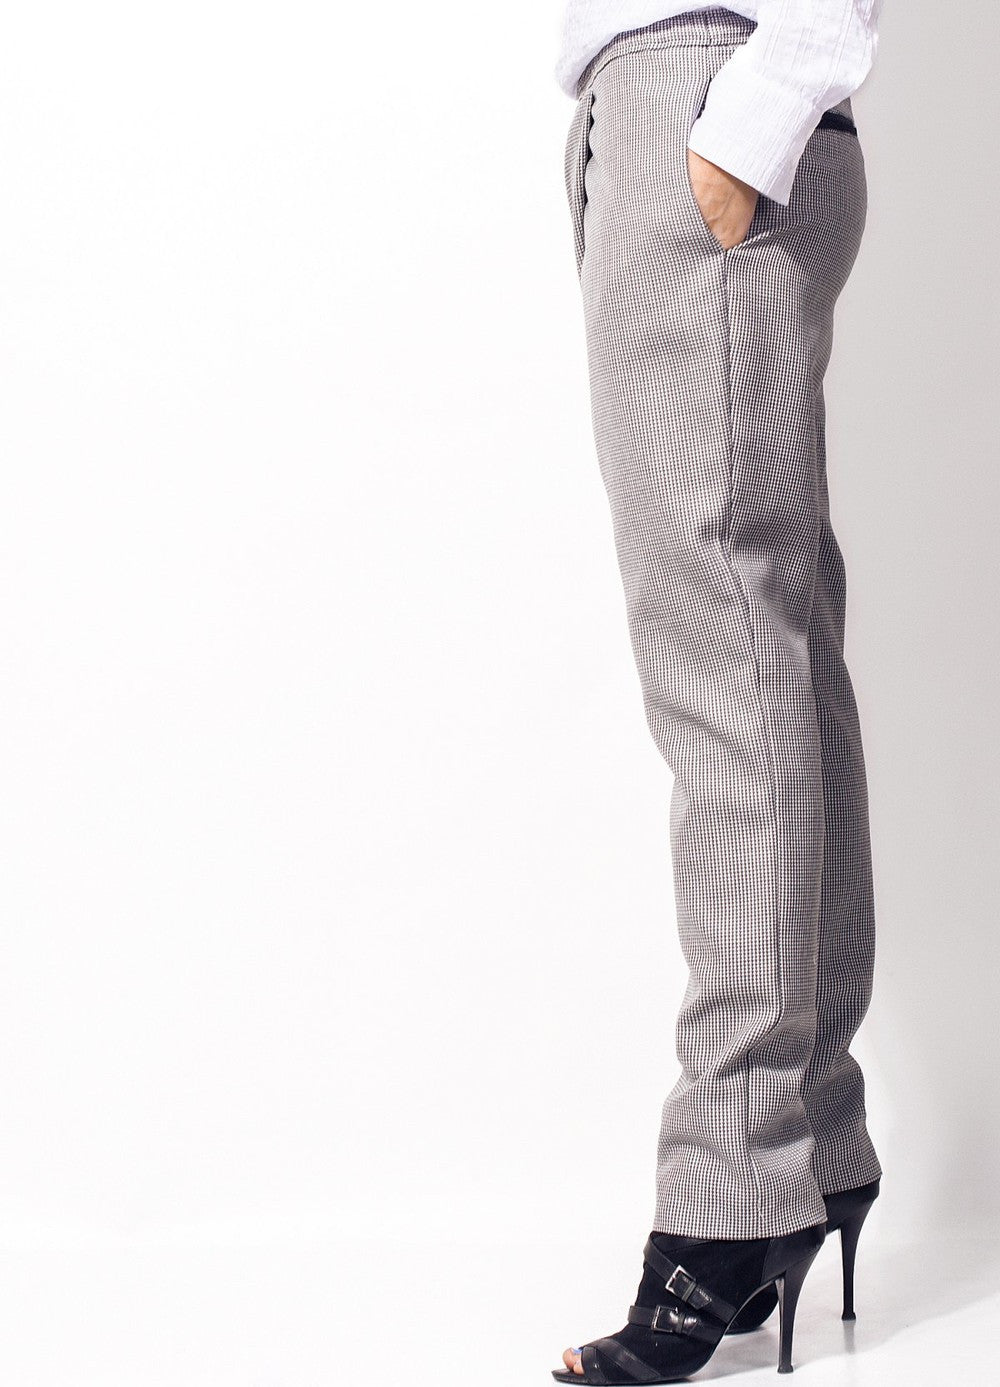 Grey and Black Pants